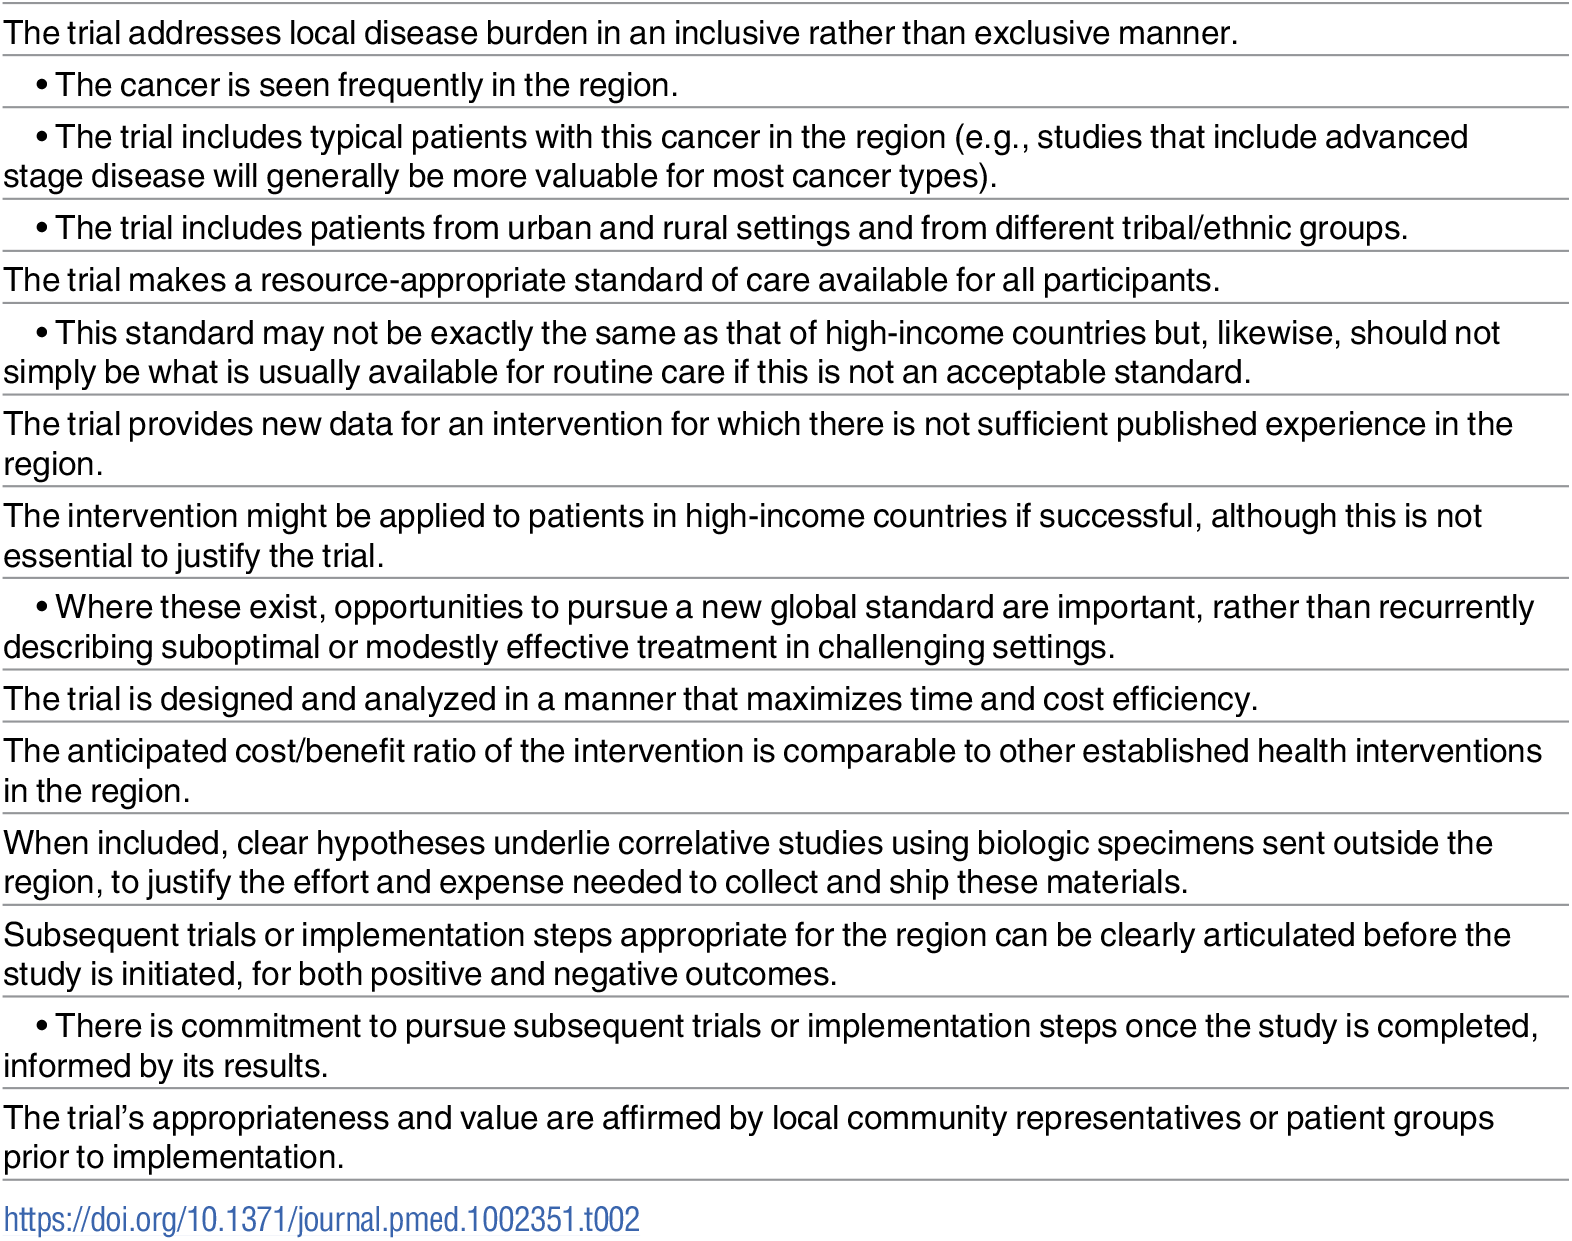 Ideal attributes of a cancer treatment trial in sub-Saharan Africa.